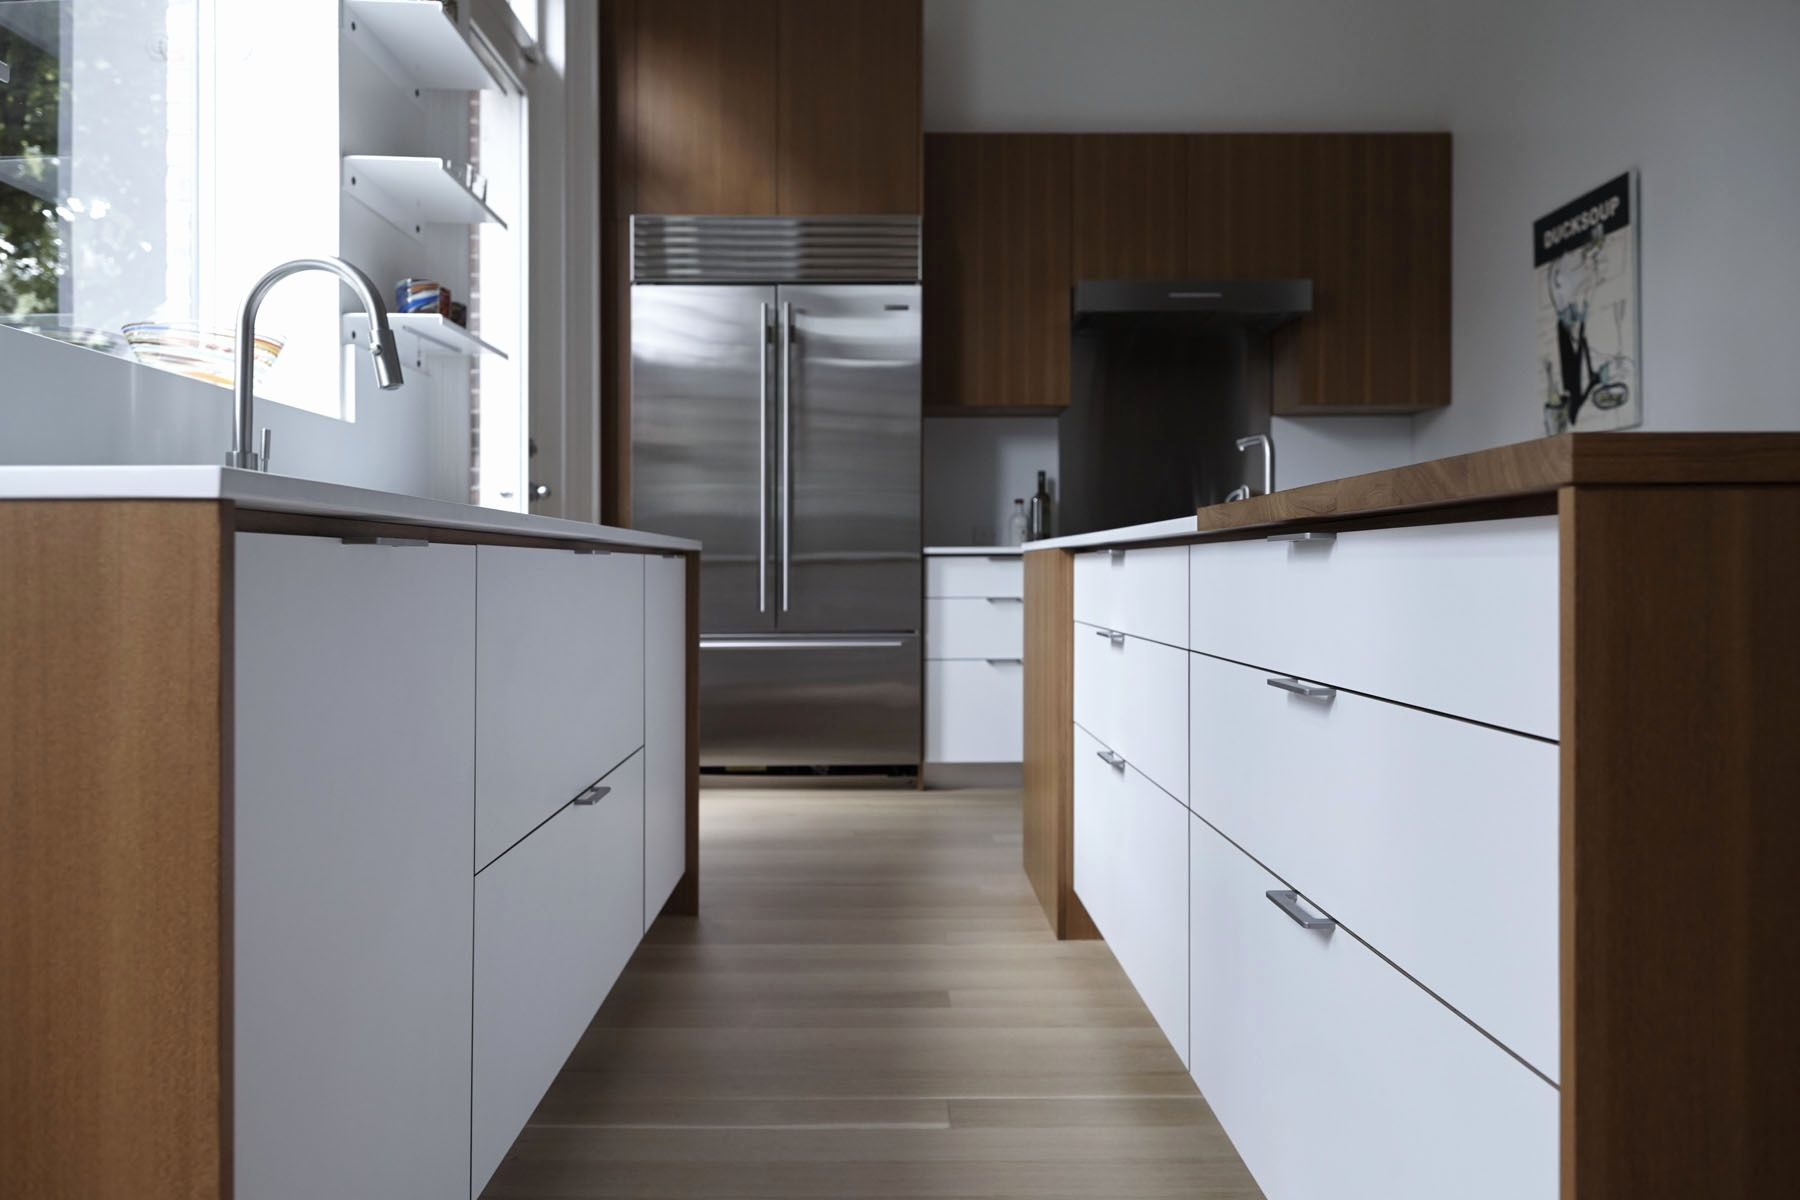 kitchen cabinets brooklyn inspirational henry built cabinets cost rh pinterest com Built in Cabinet Plans Built in Cabinet Ideas